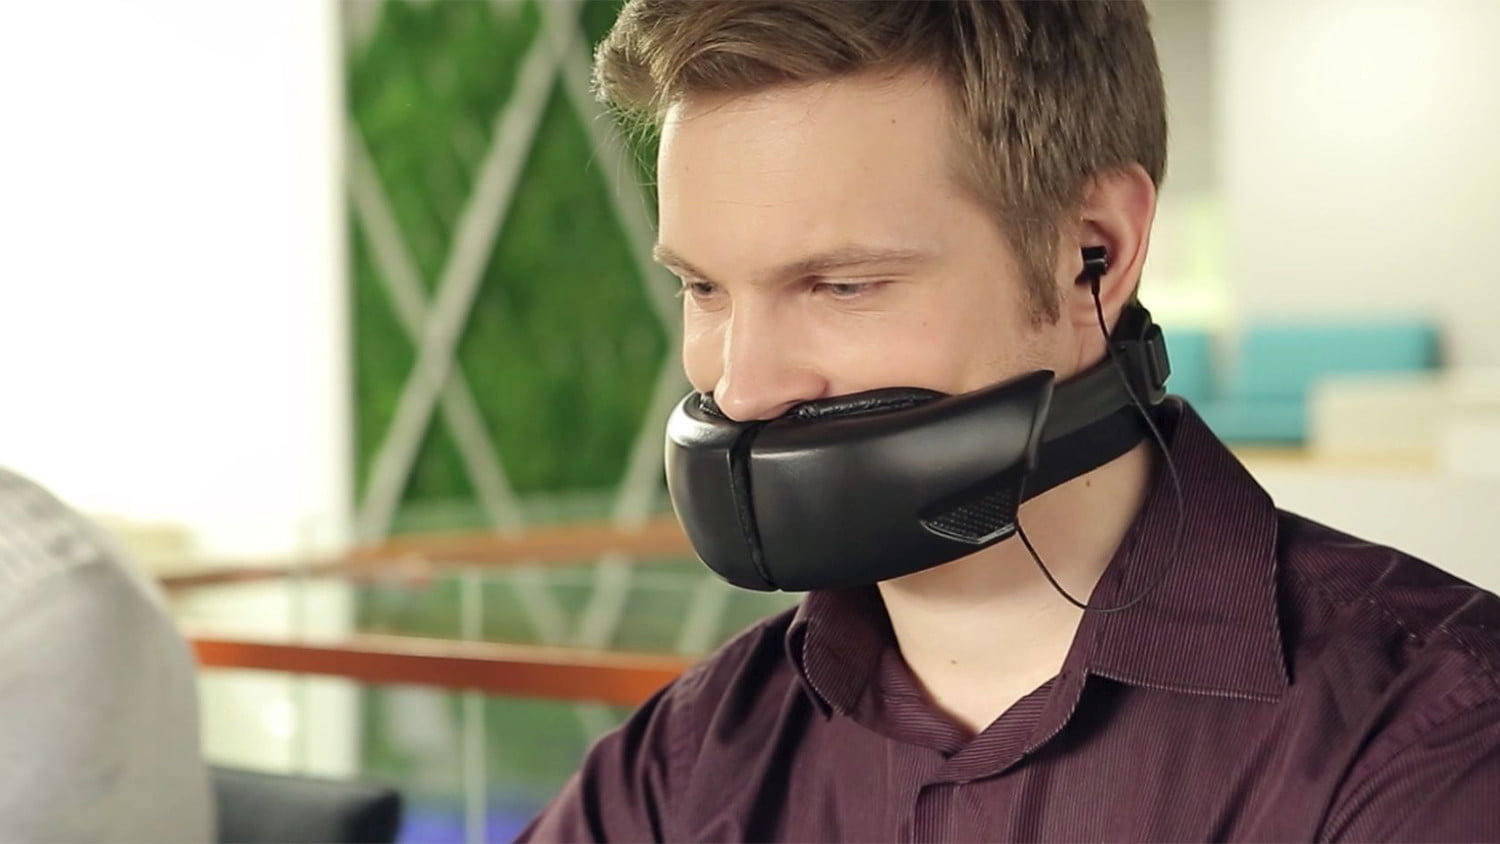 5 of our favorite mad gadgets from the London Wearable Technology Show